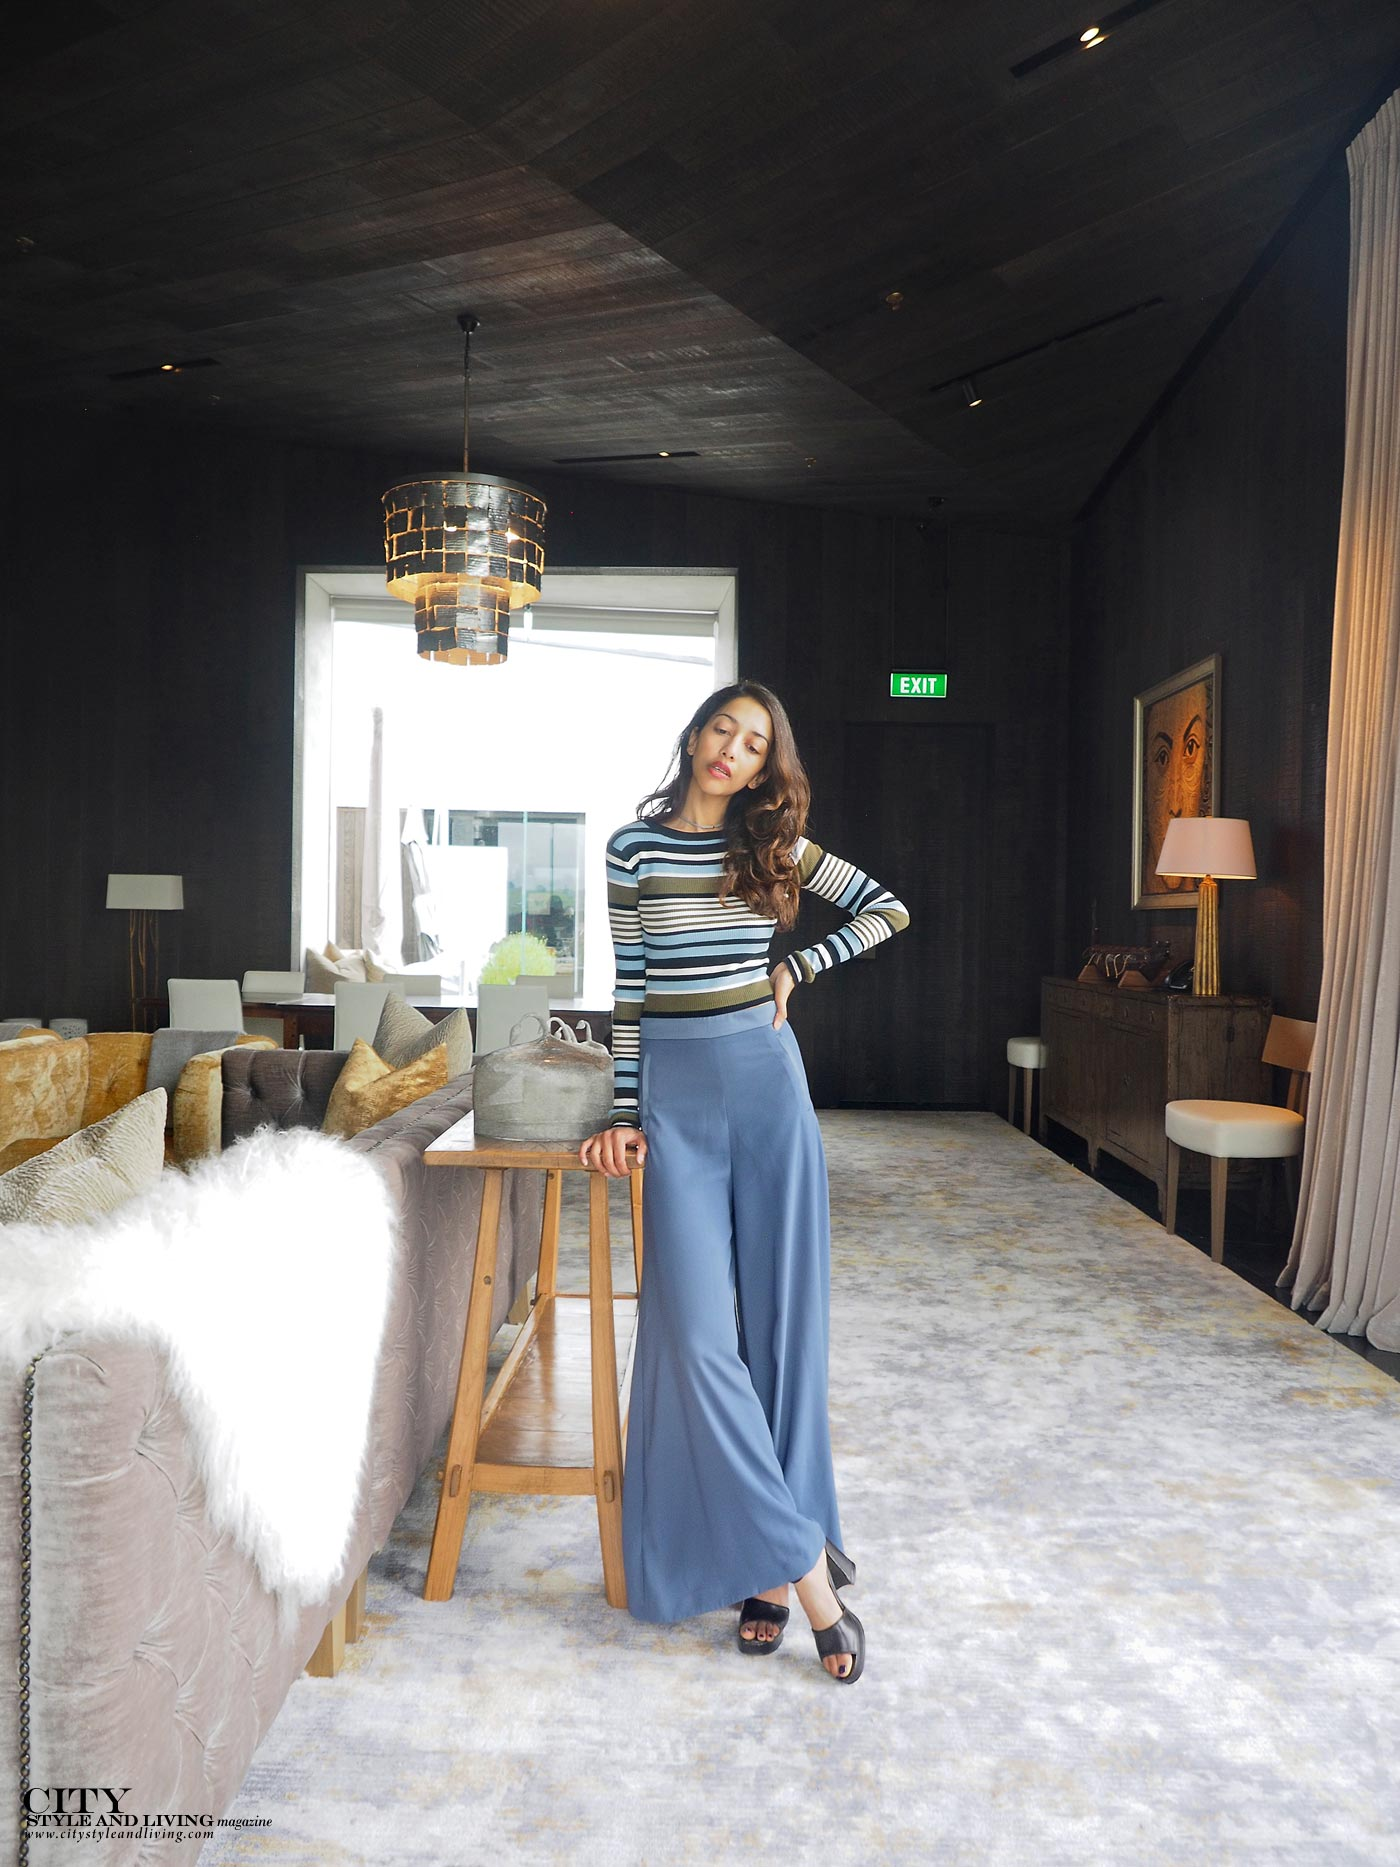 City style and living magazine Editors Notebook style fashion blogger Shivana M kinloch club clubhouse meeting room culottes and striped croptop